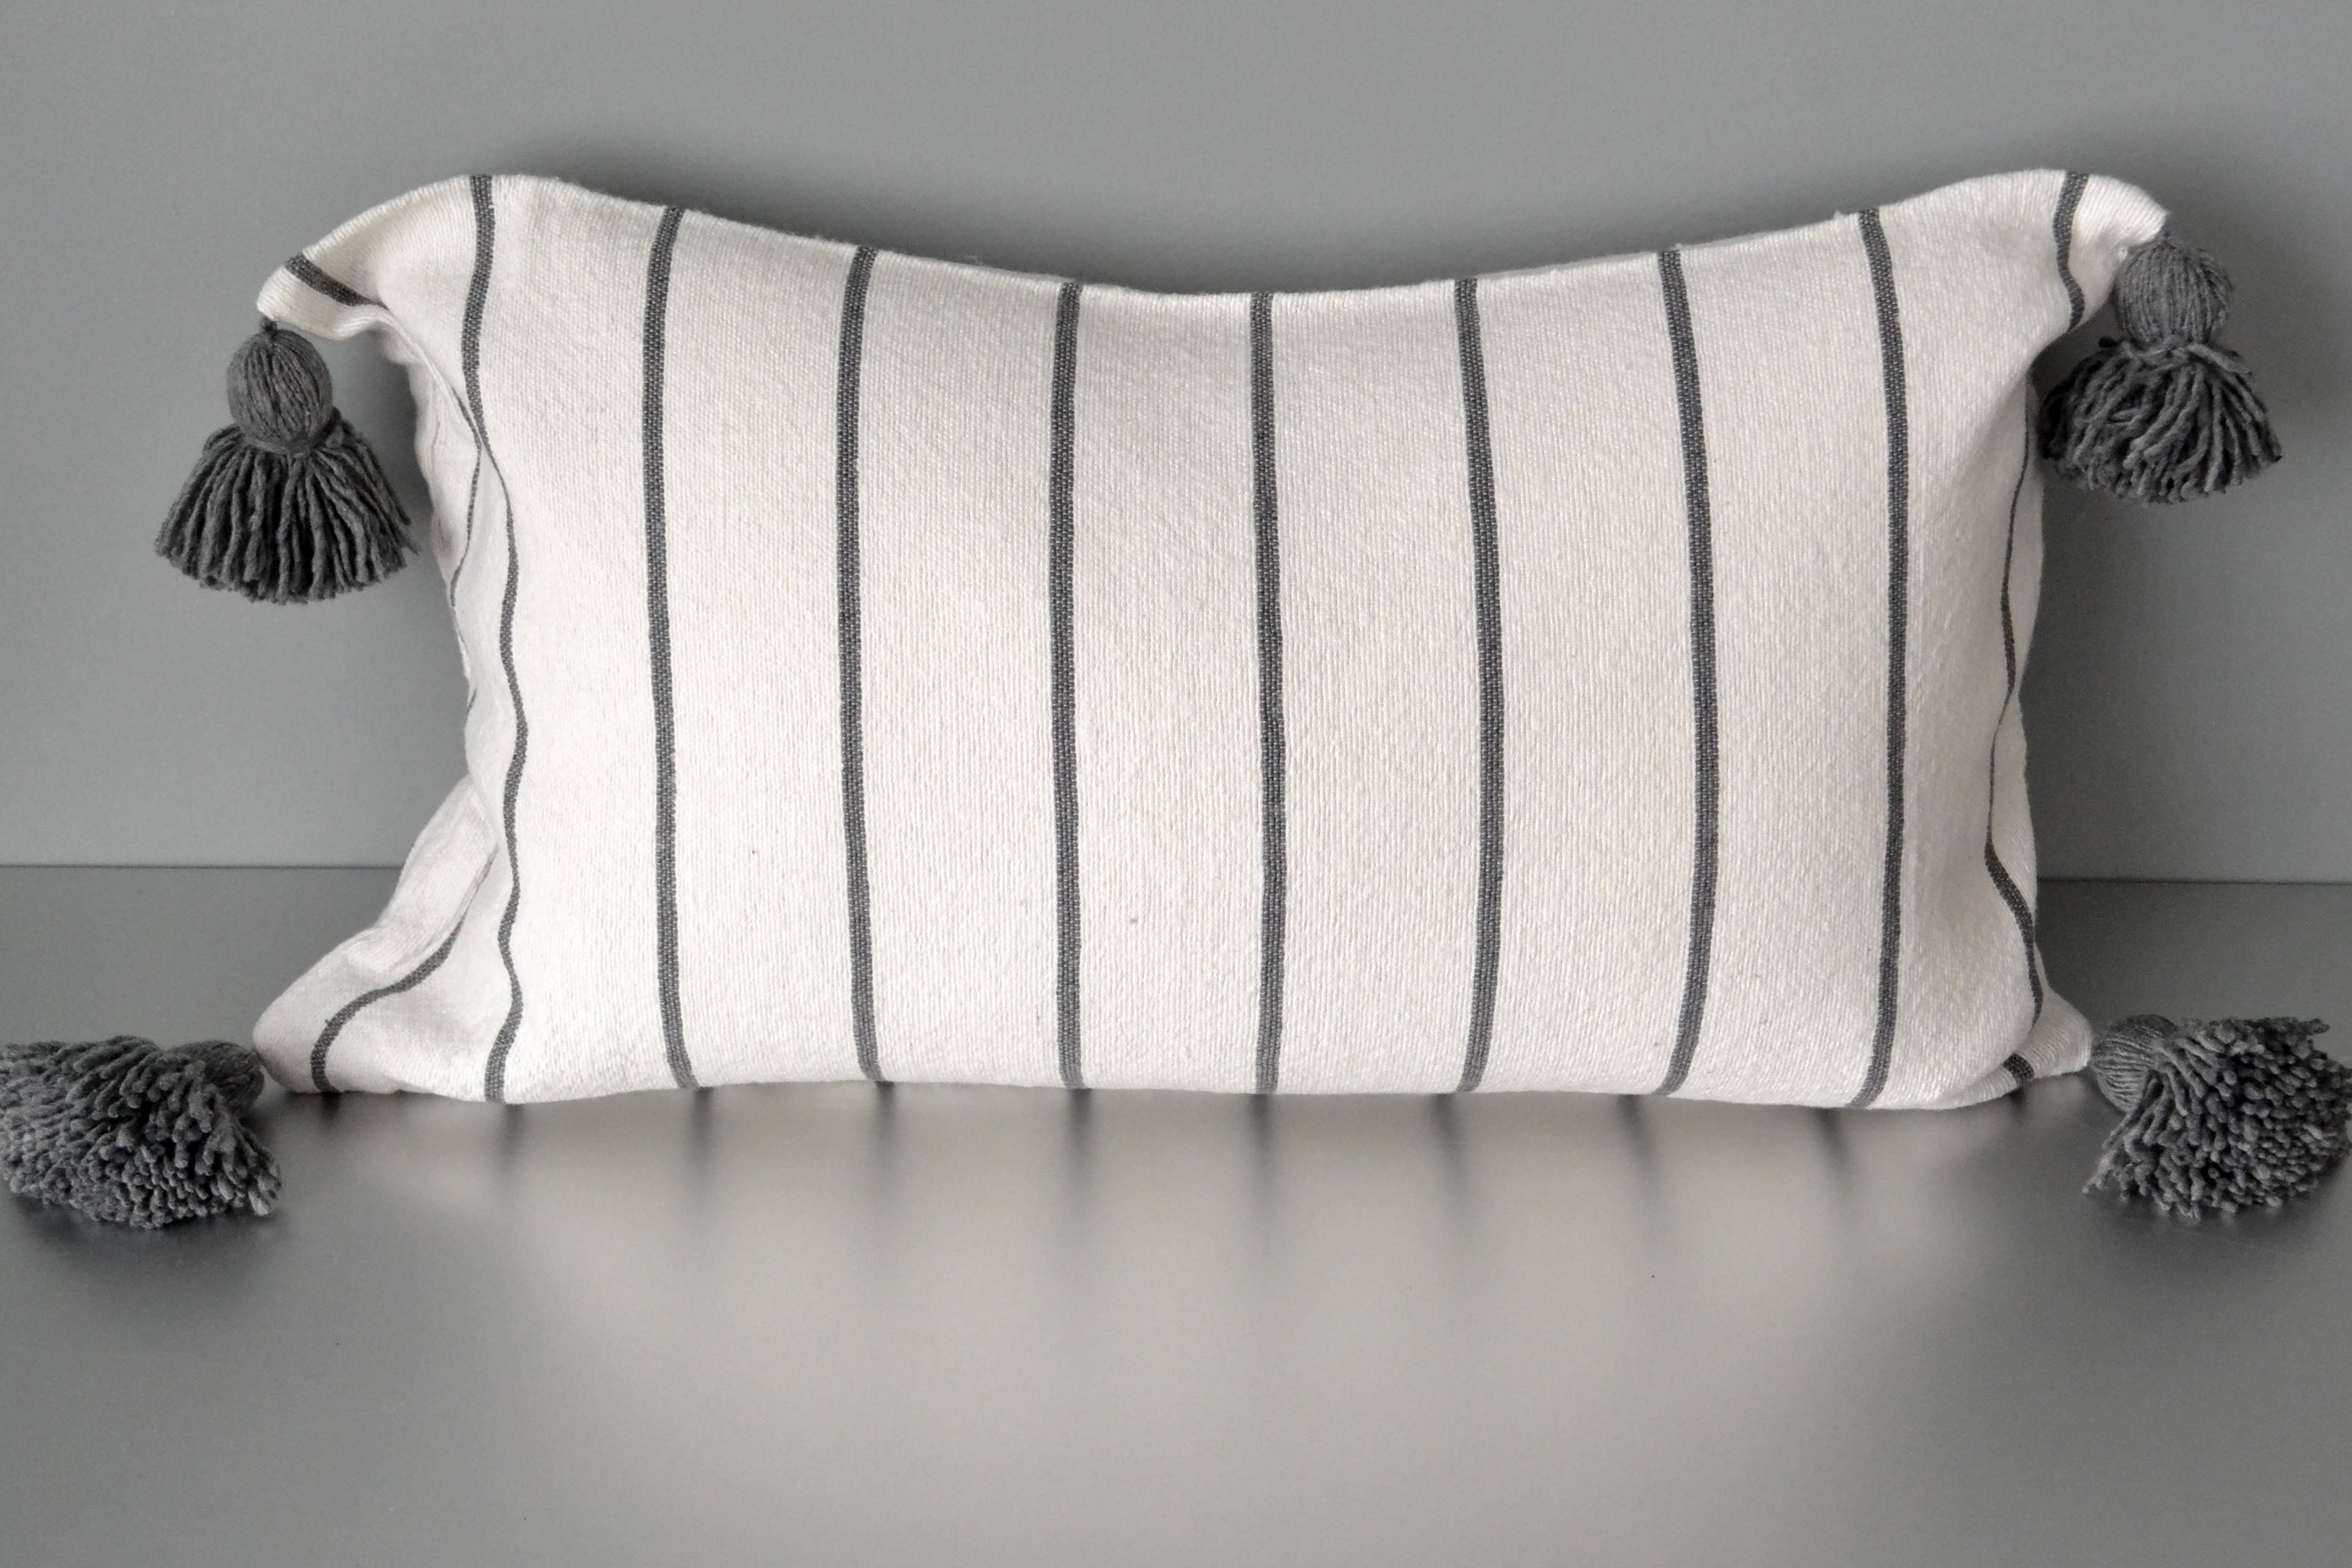 Steel Gray Striped Pom Pom Lumbar Pillow by Yuba Mercantile